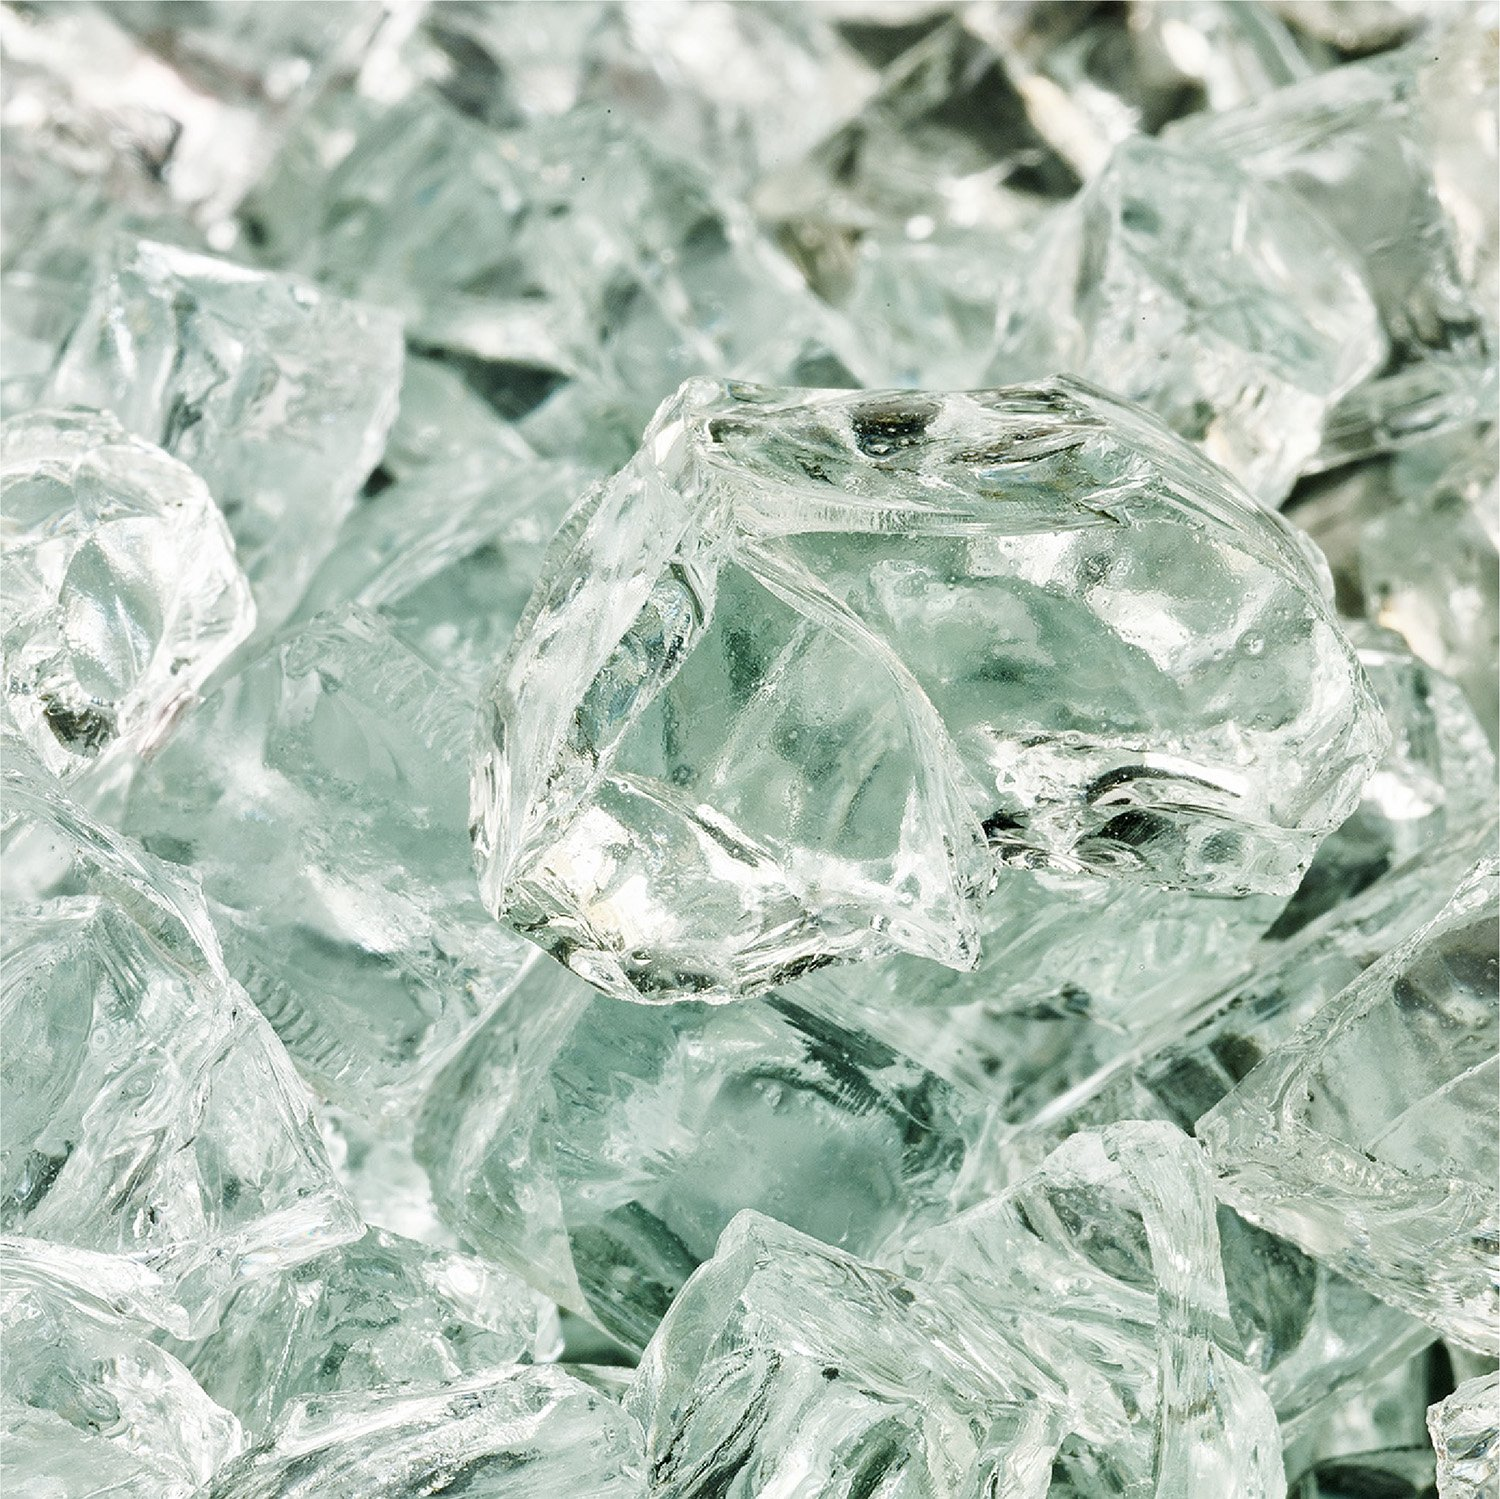 Clear Fire Glass for Indoor and Outdoor Fire Pits or Fireplaces | 10 Pounds | Arctic Ice, Fire Glass Cubes, 1 Inch Fire Pit Essentials